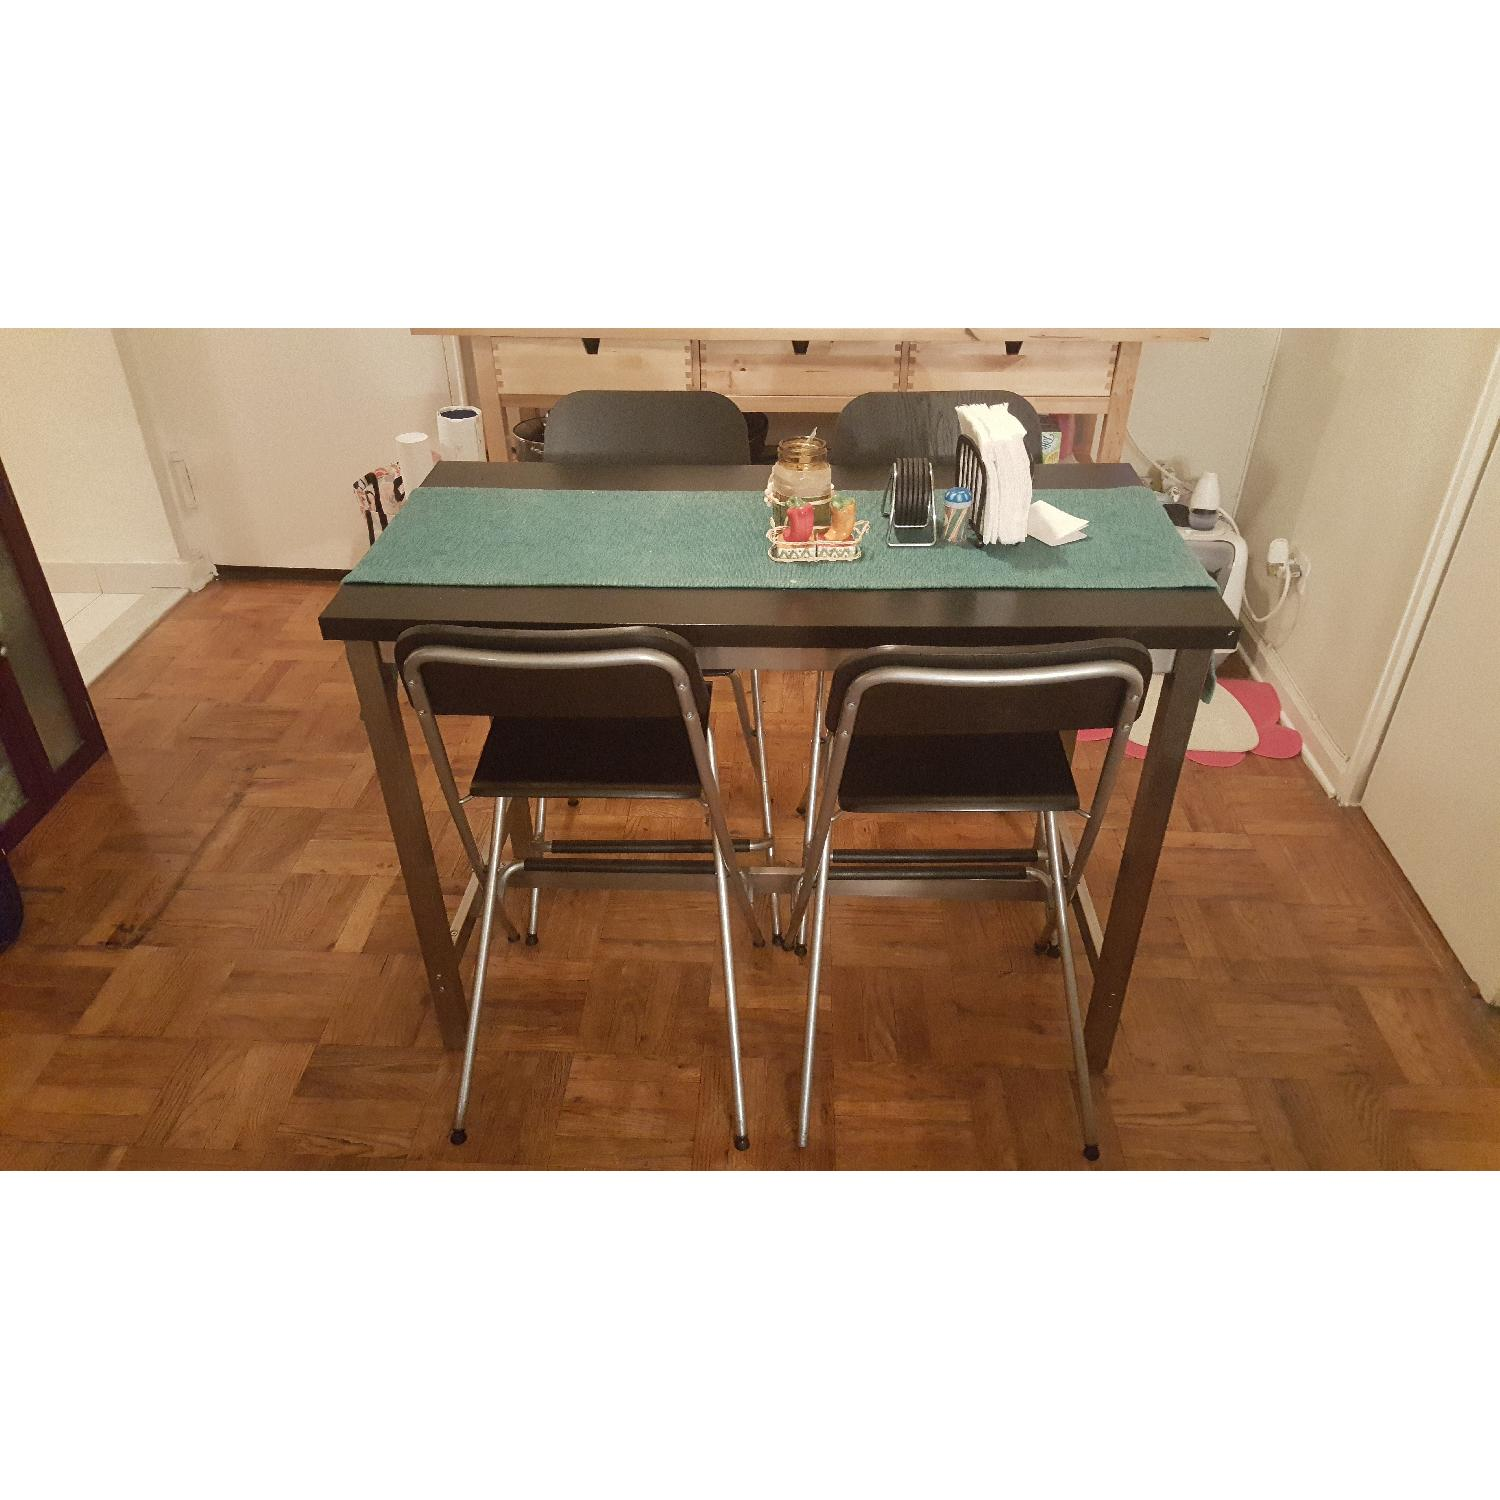 Ikea High Dining Table w/ 4 Chairs - image-3